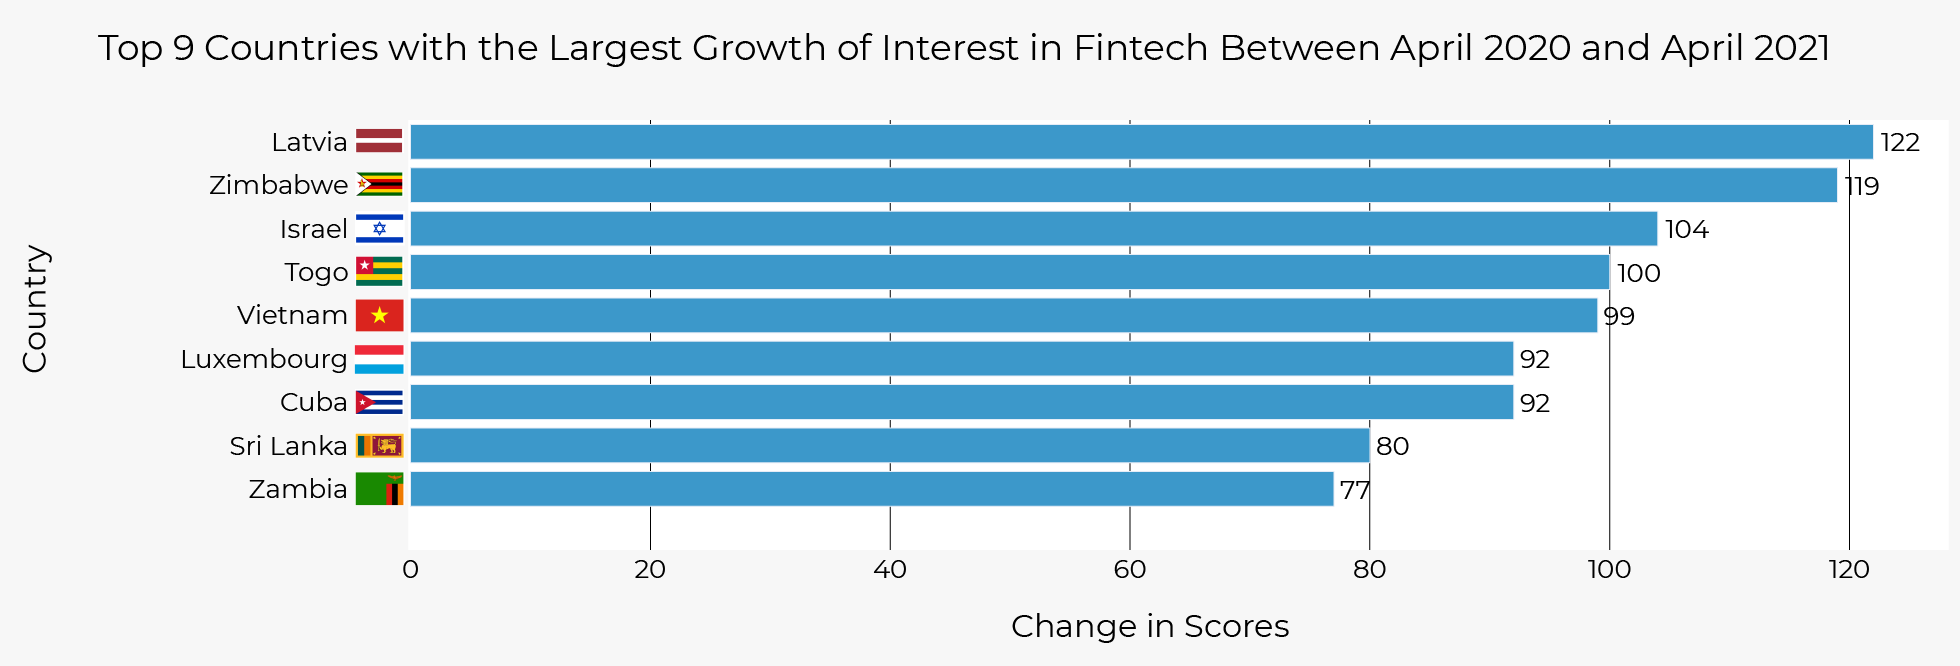 Top 9 Countries with The Largest Growth of Interest in Fintech Between April 2020 and April 2021